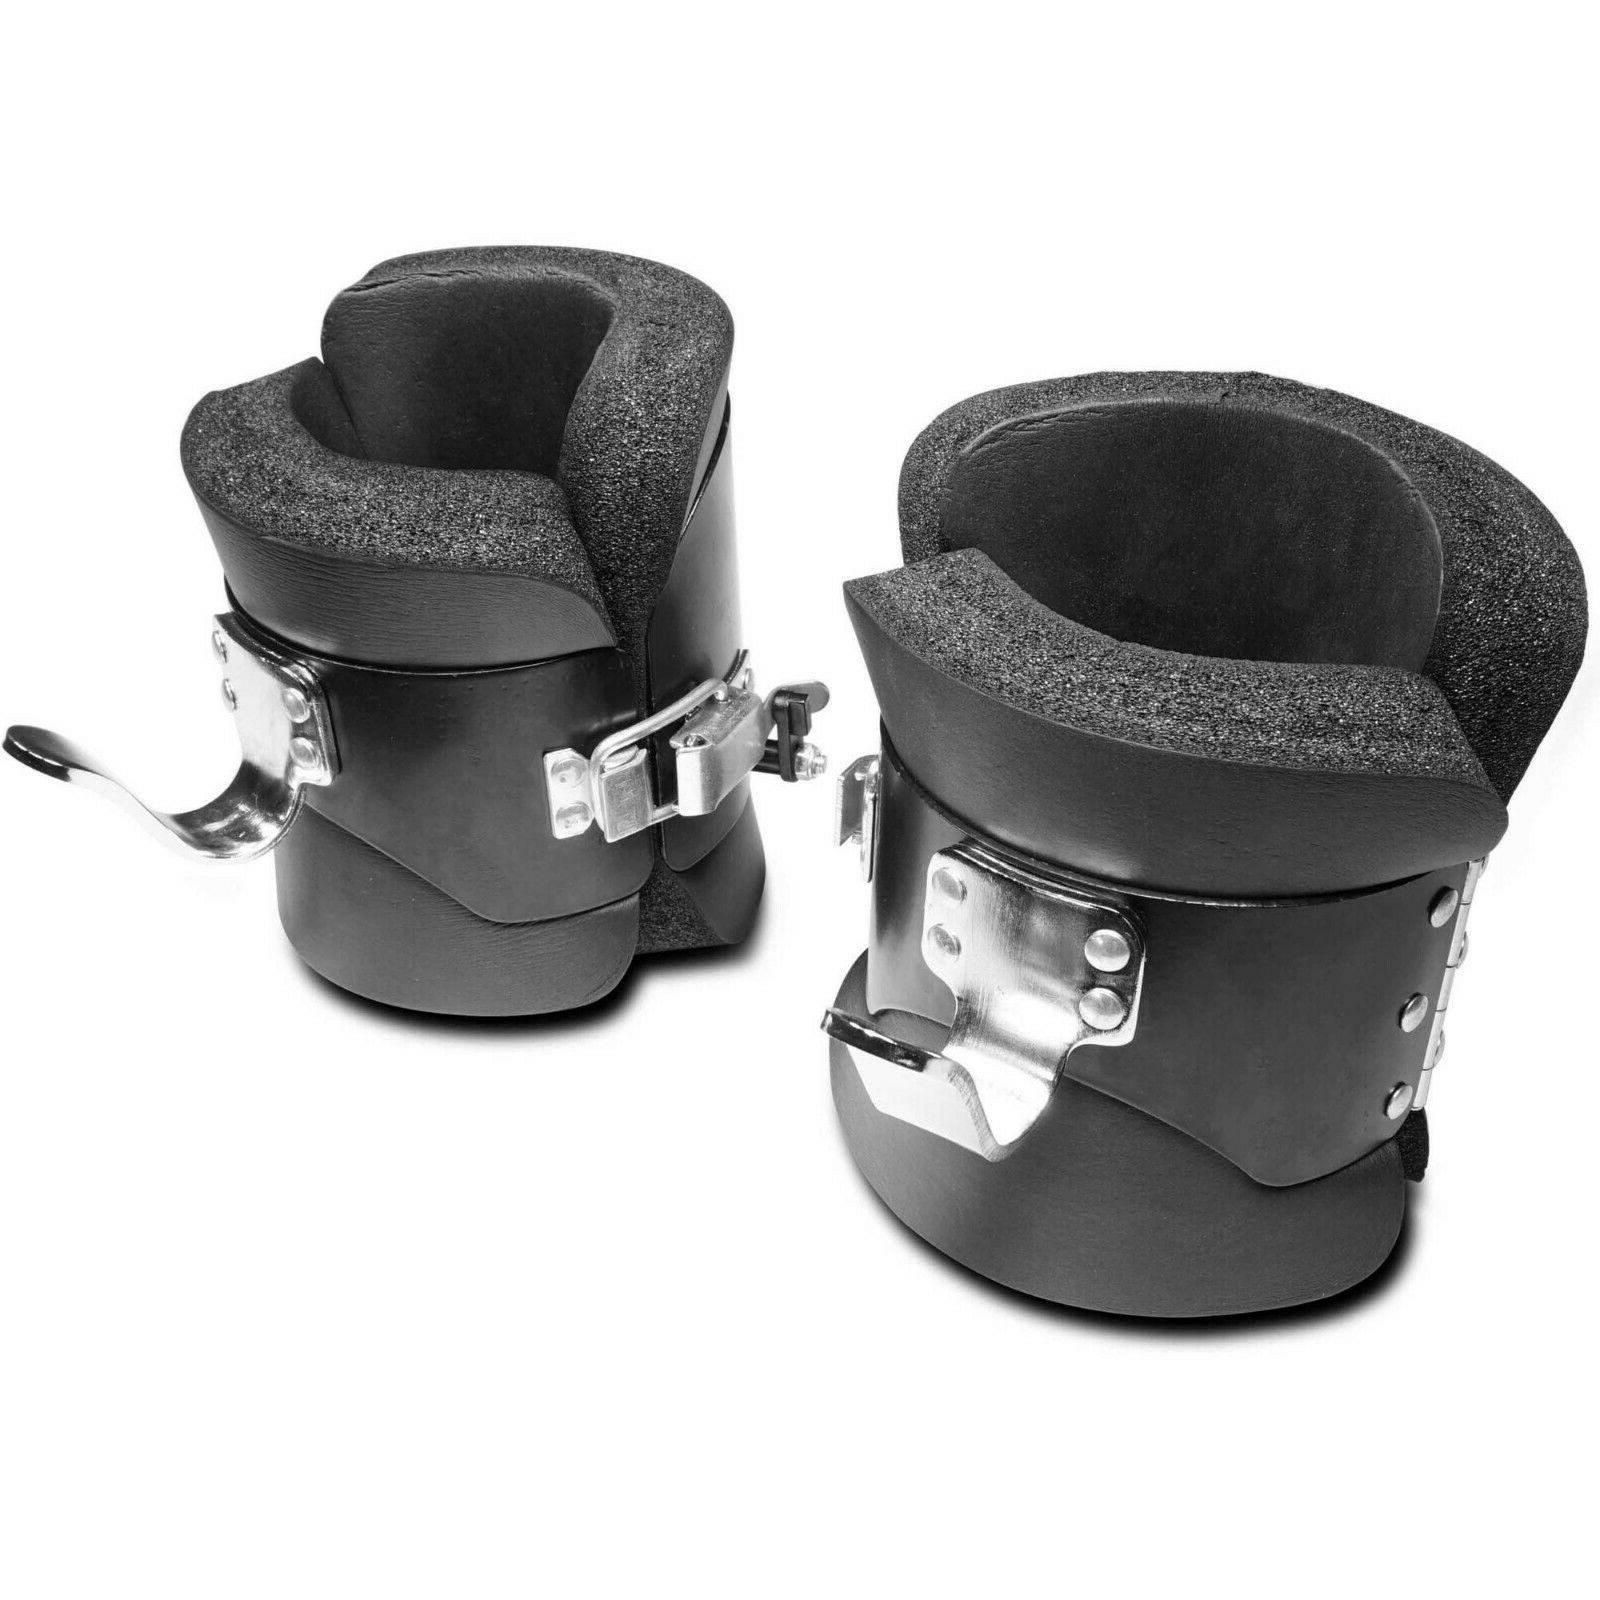 inversion boots comfortable padded anti gravity therapy